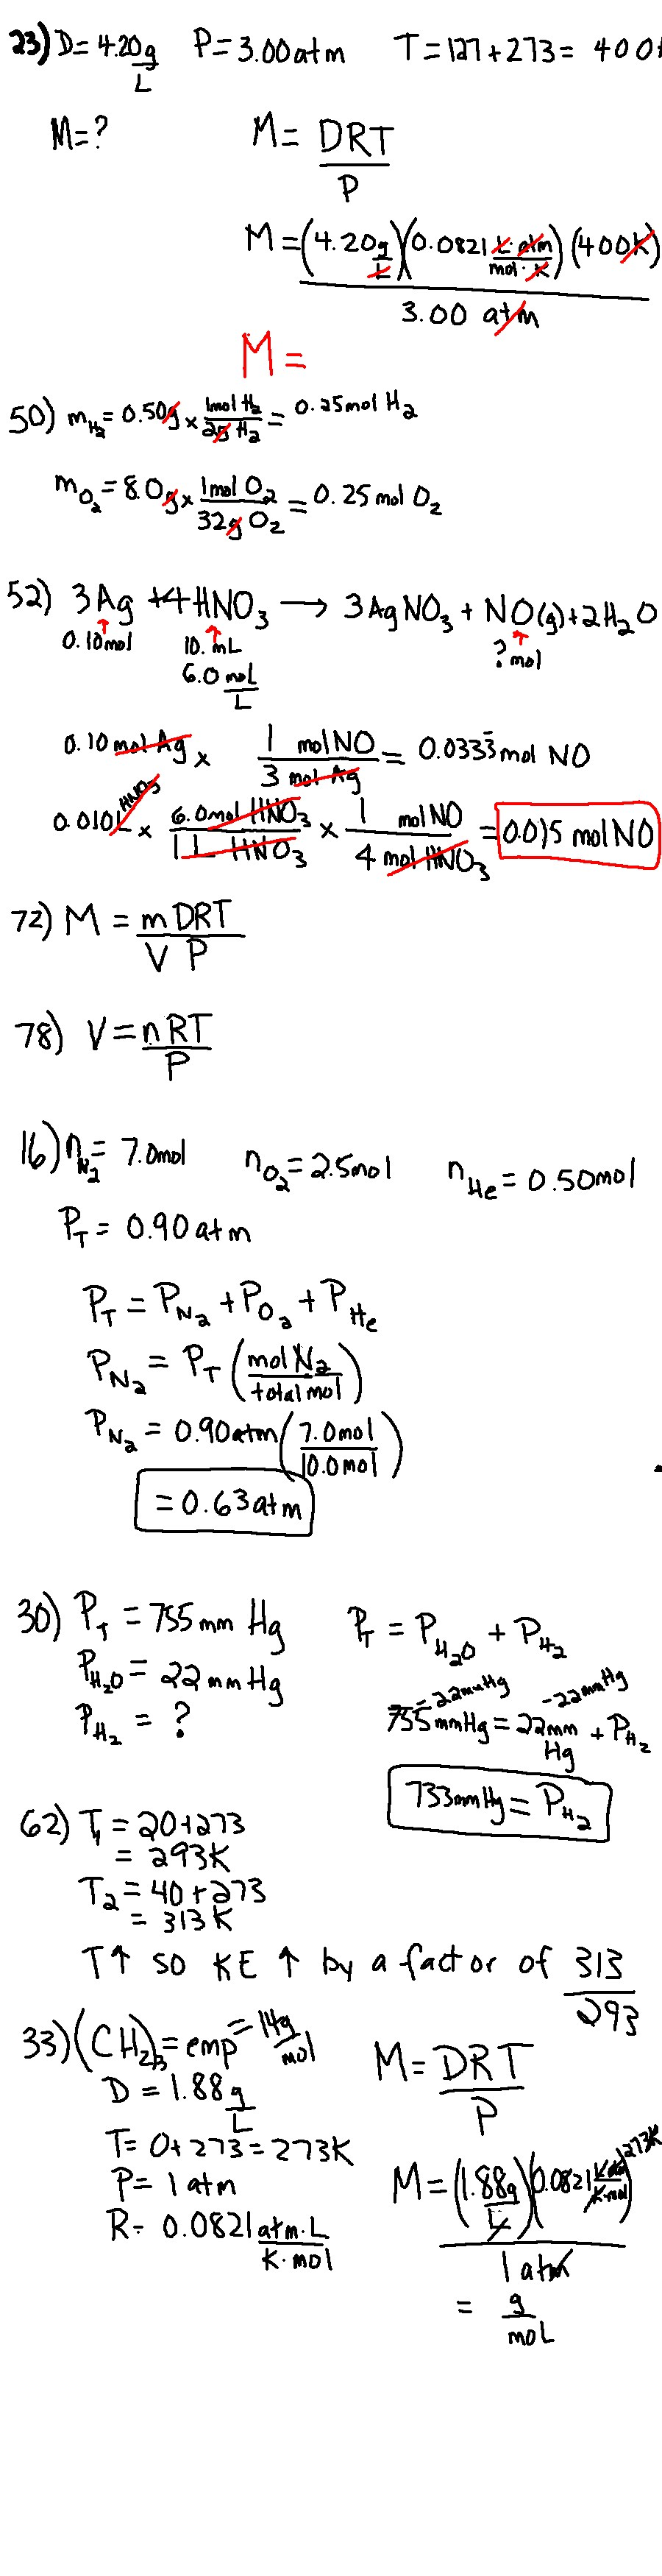 Prentice H Ll Chemistry Ch Pter 11 W Ksheets Nswers Free